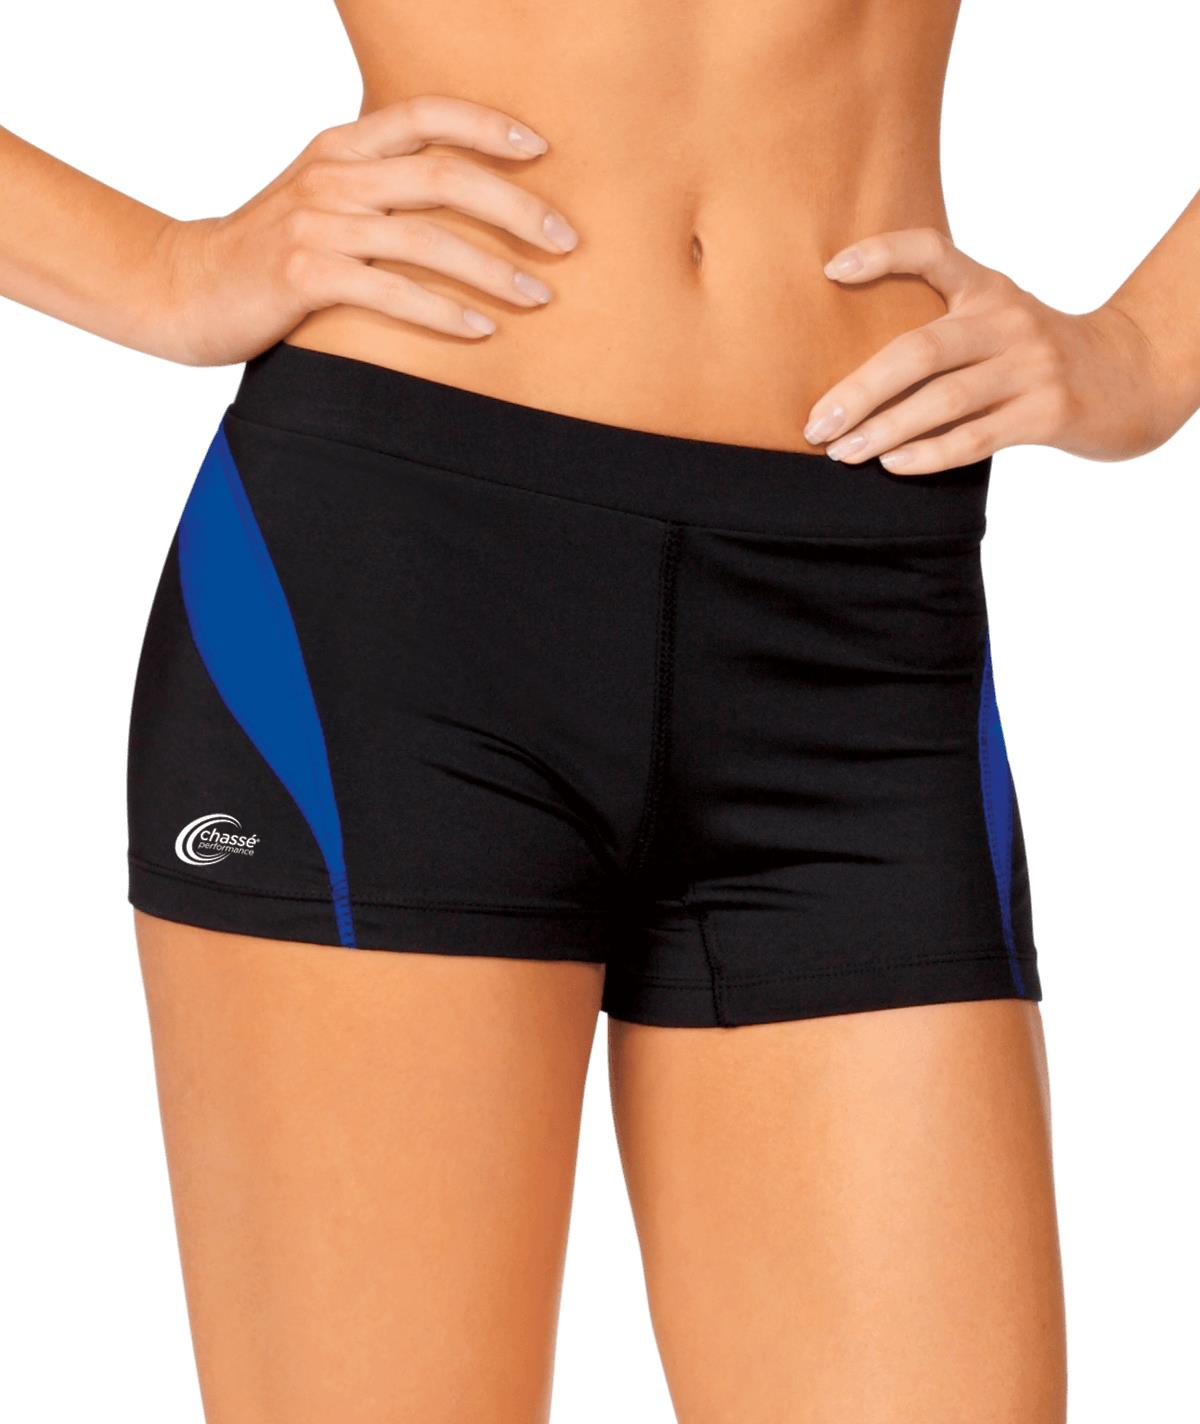 Chasse Performance C-Fuse Short